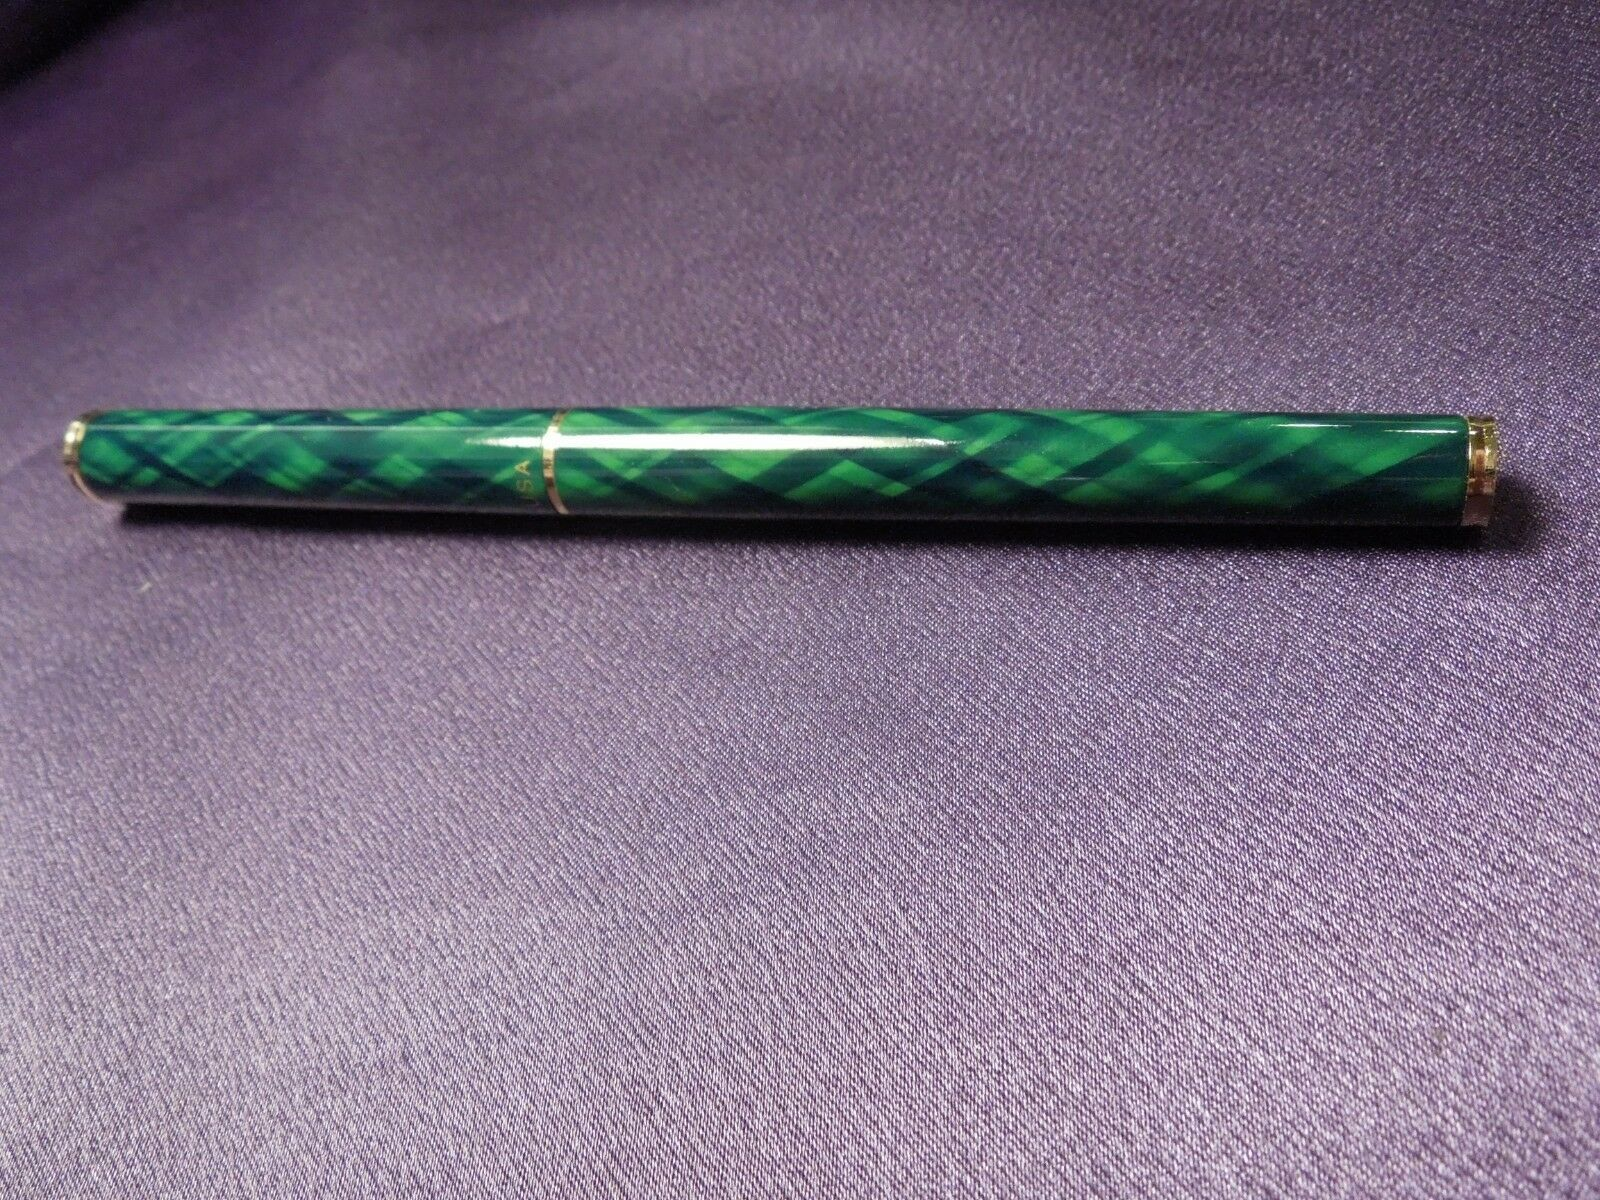 Green & Gold Sheaffer Ballpoint Pen in Original Red and Gold Box